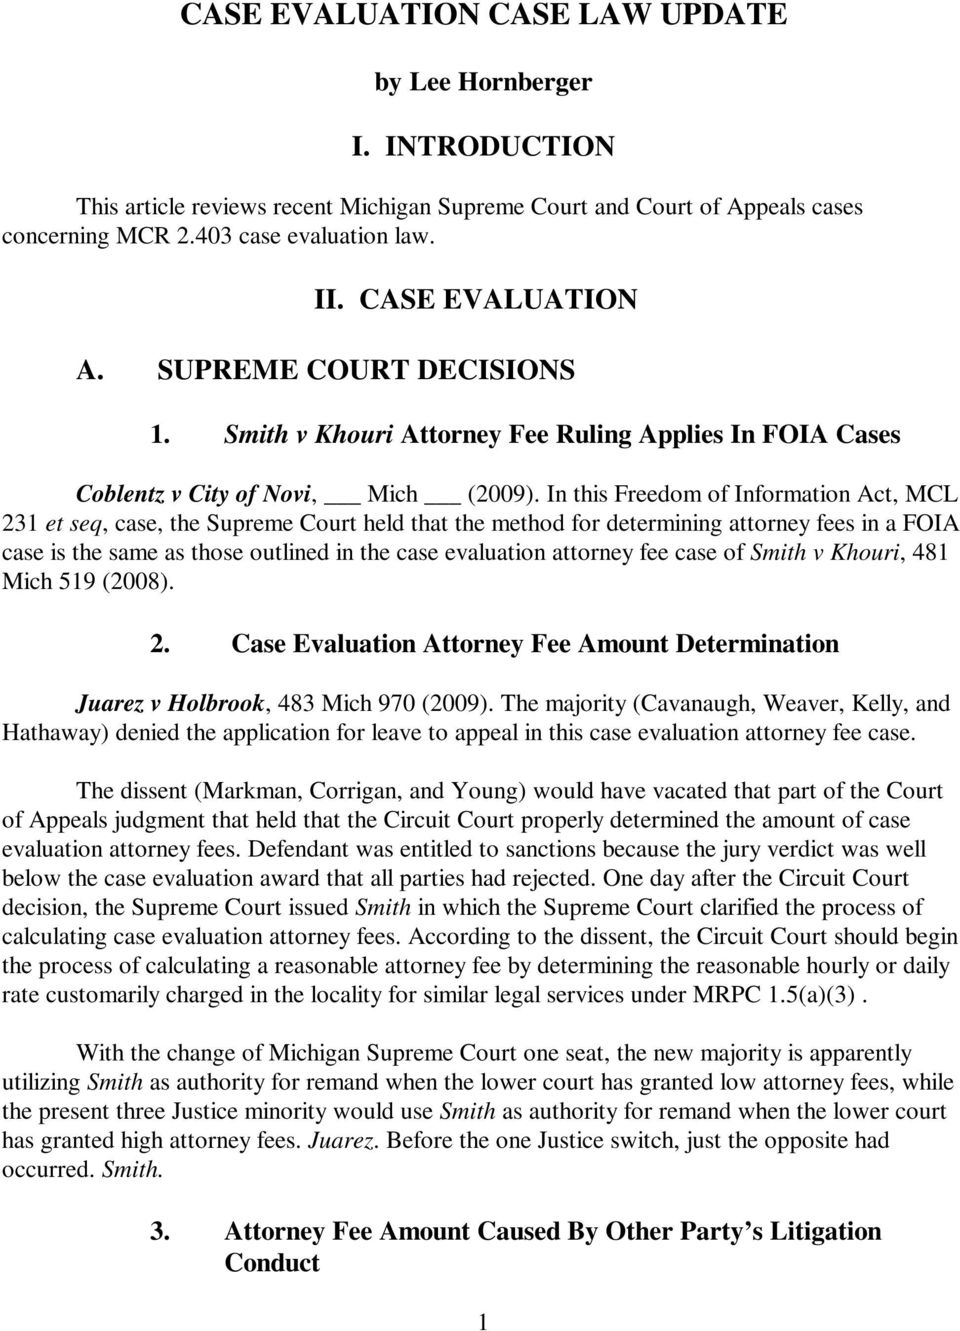 In this Freedom of Information Act, MCL 231 et seq, case, the Supreme Court held that the method for determining attorney fees in a FOIA case is the same as those outlined in the case evaluation